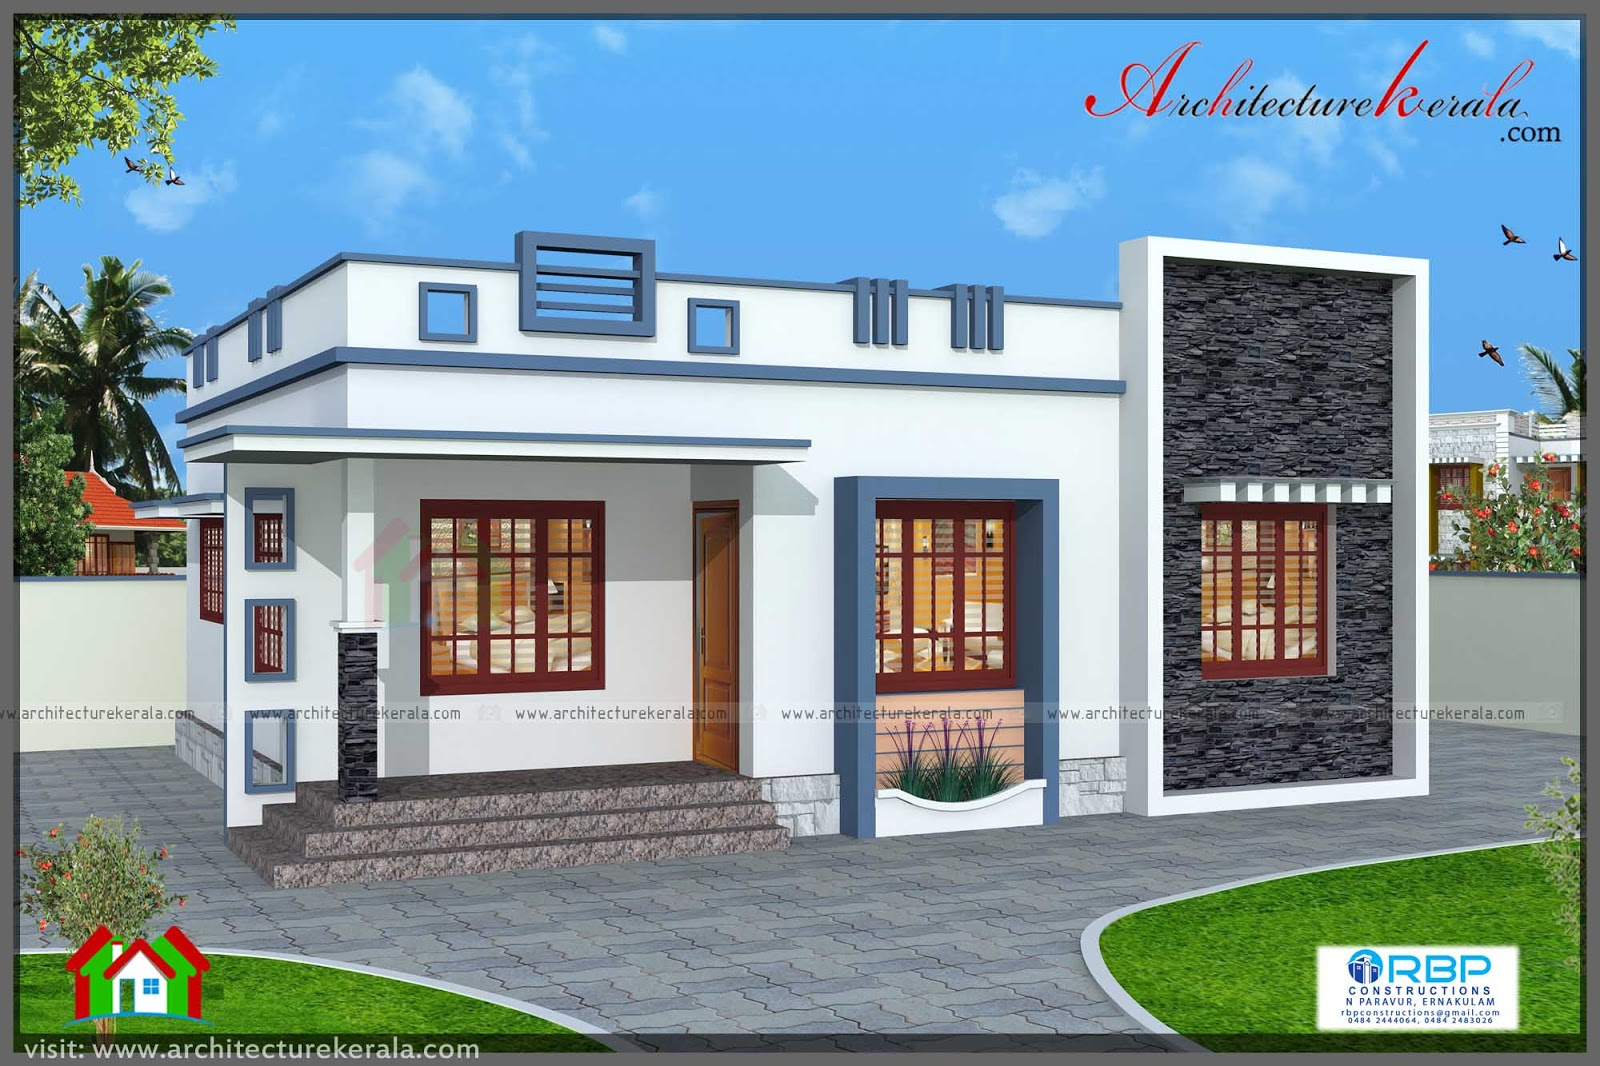 760 square feet 3 bedroom house plan architecture kerala for Building a one room house